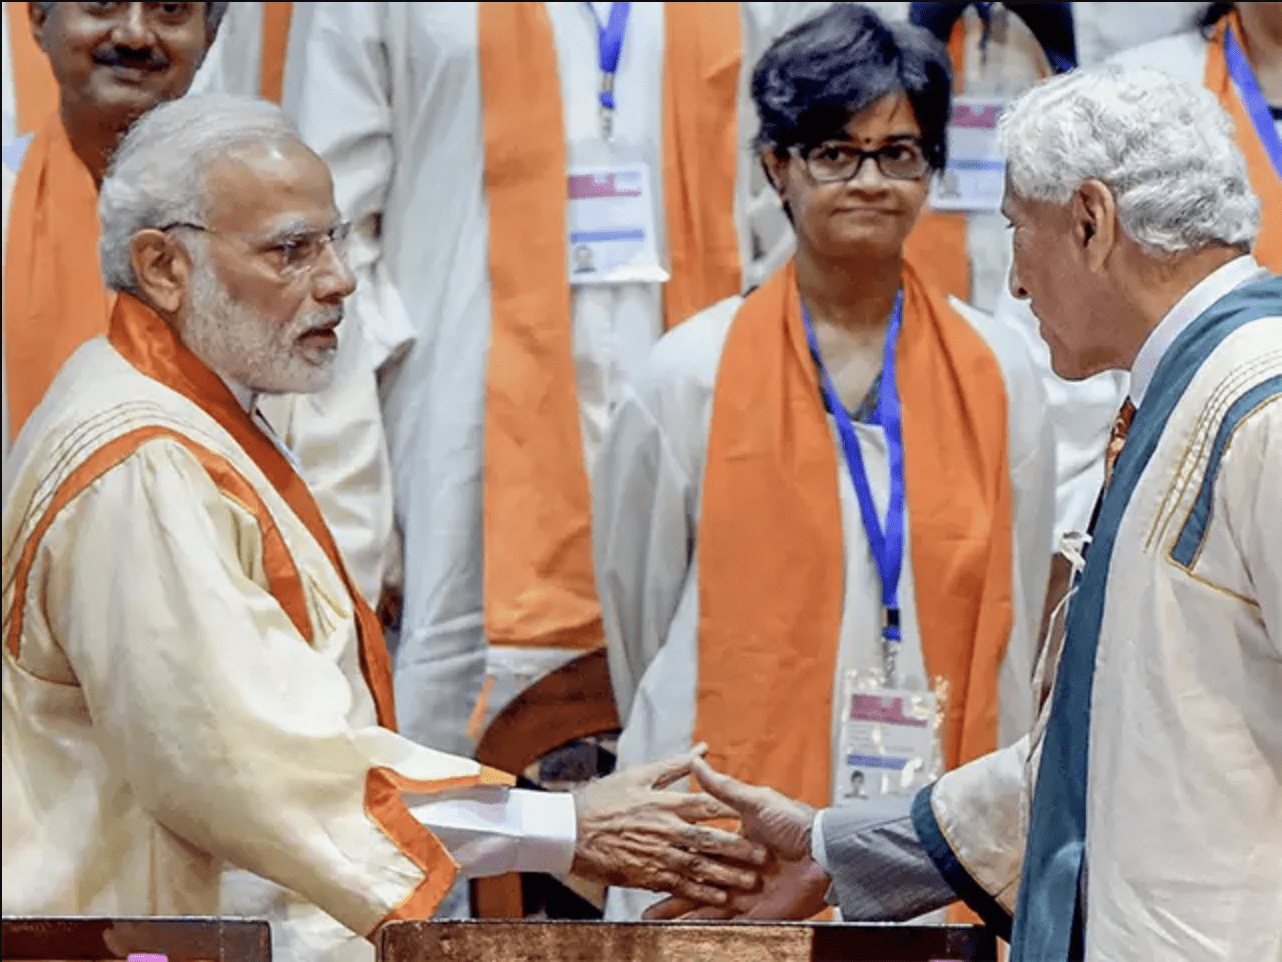 PM Modi with Dr. Romesh Wadhwahi